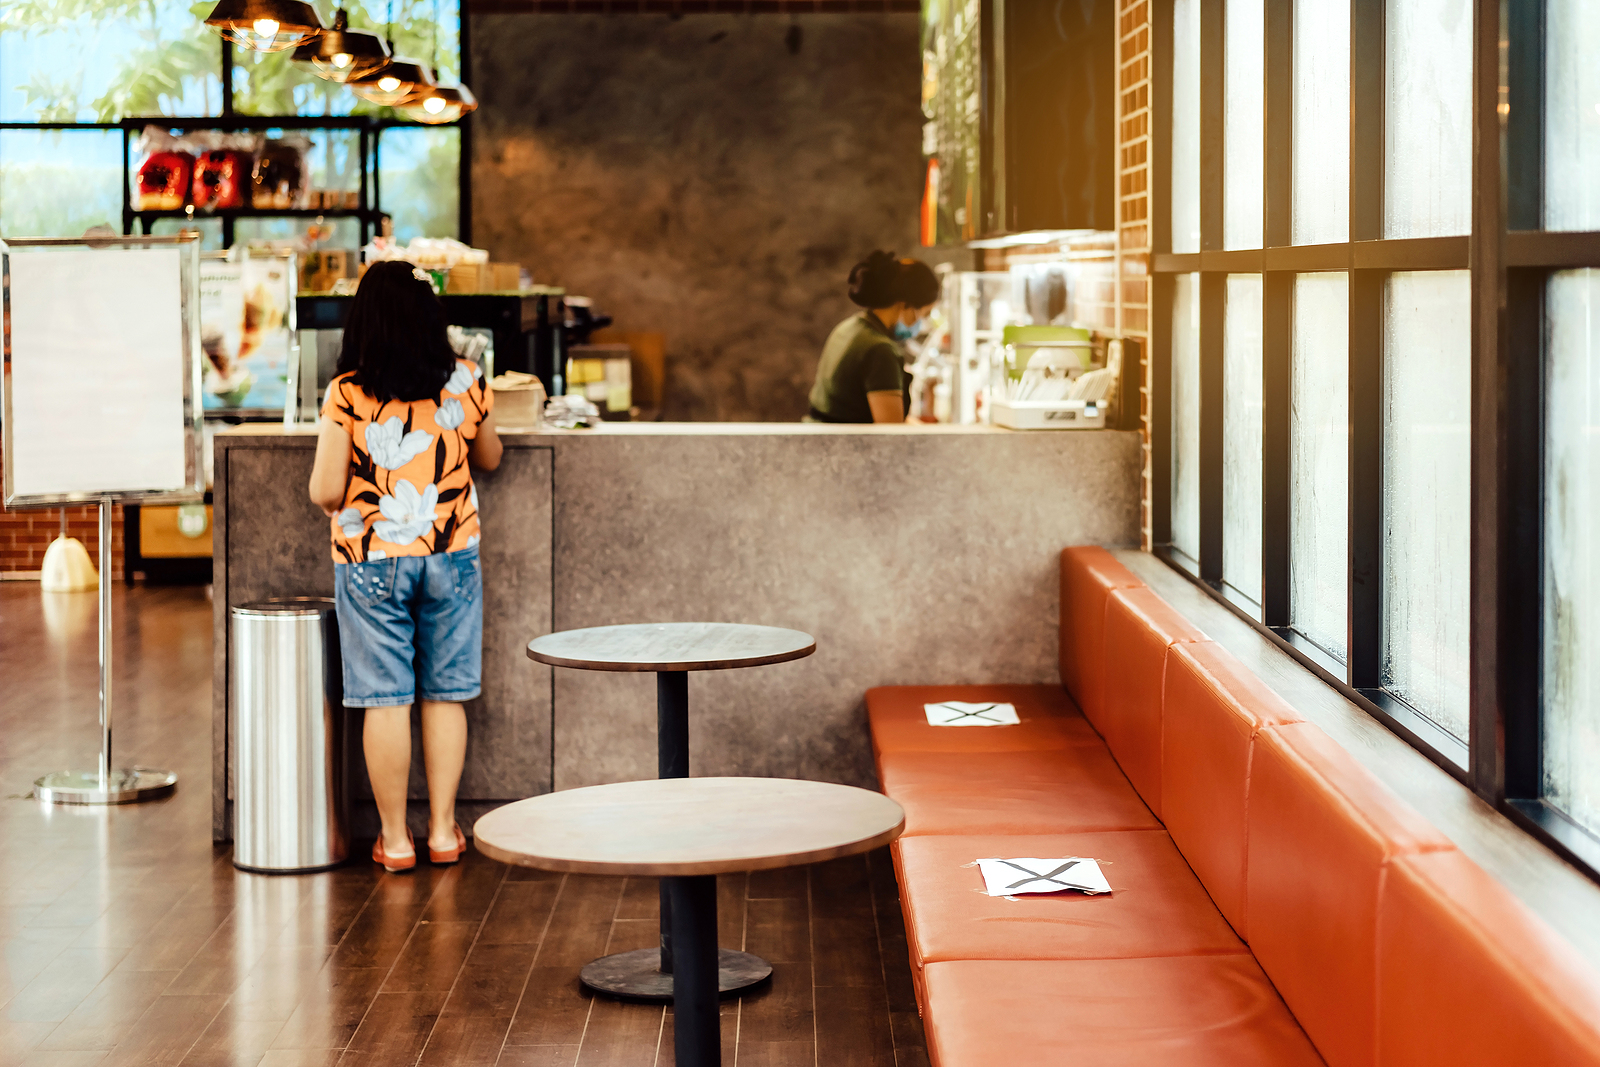 How To Achieve Social Distancing In Your Small Business